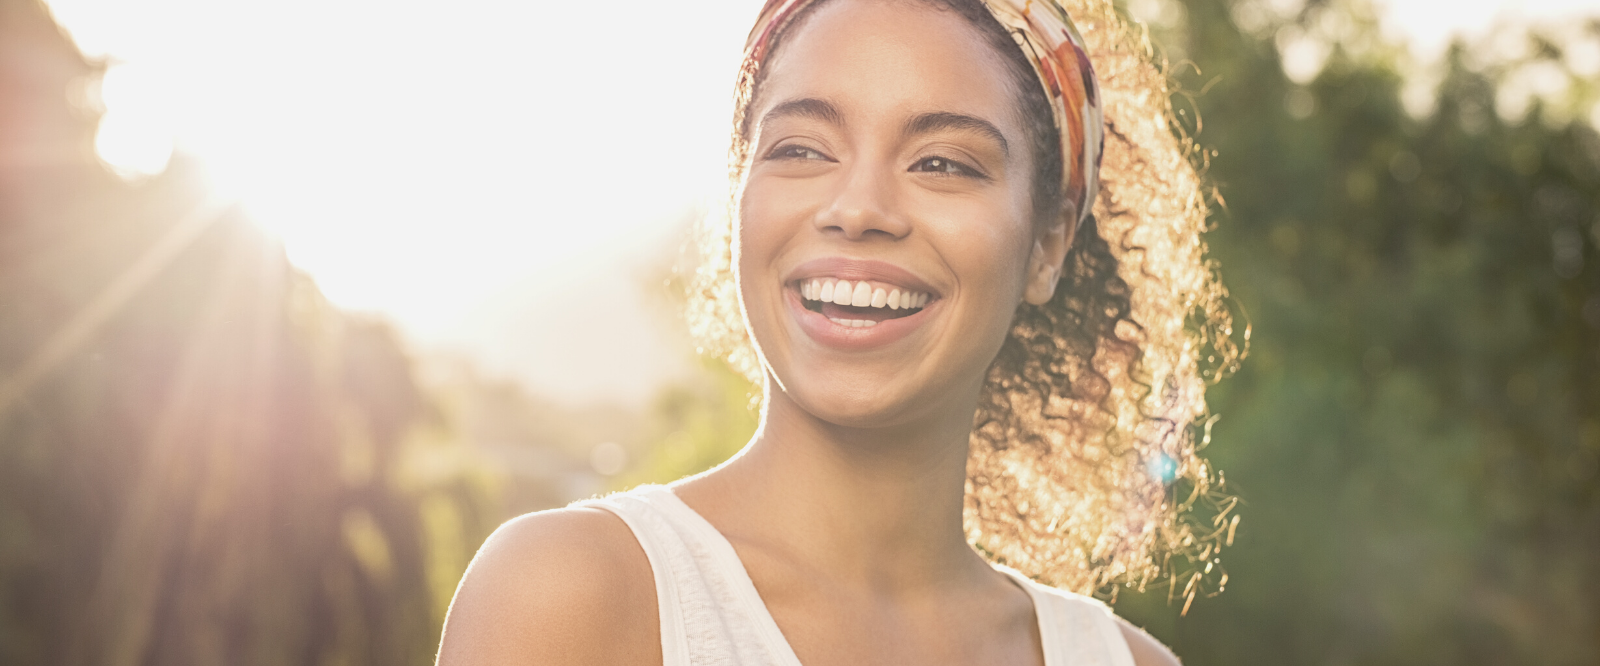 woman smiling with sunshine behind her